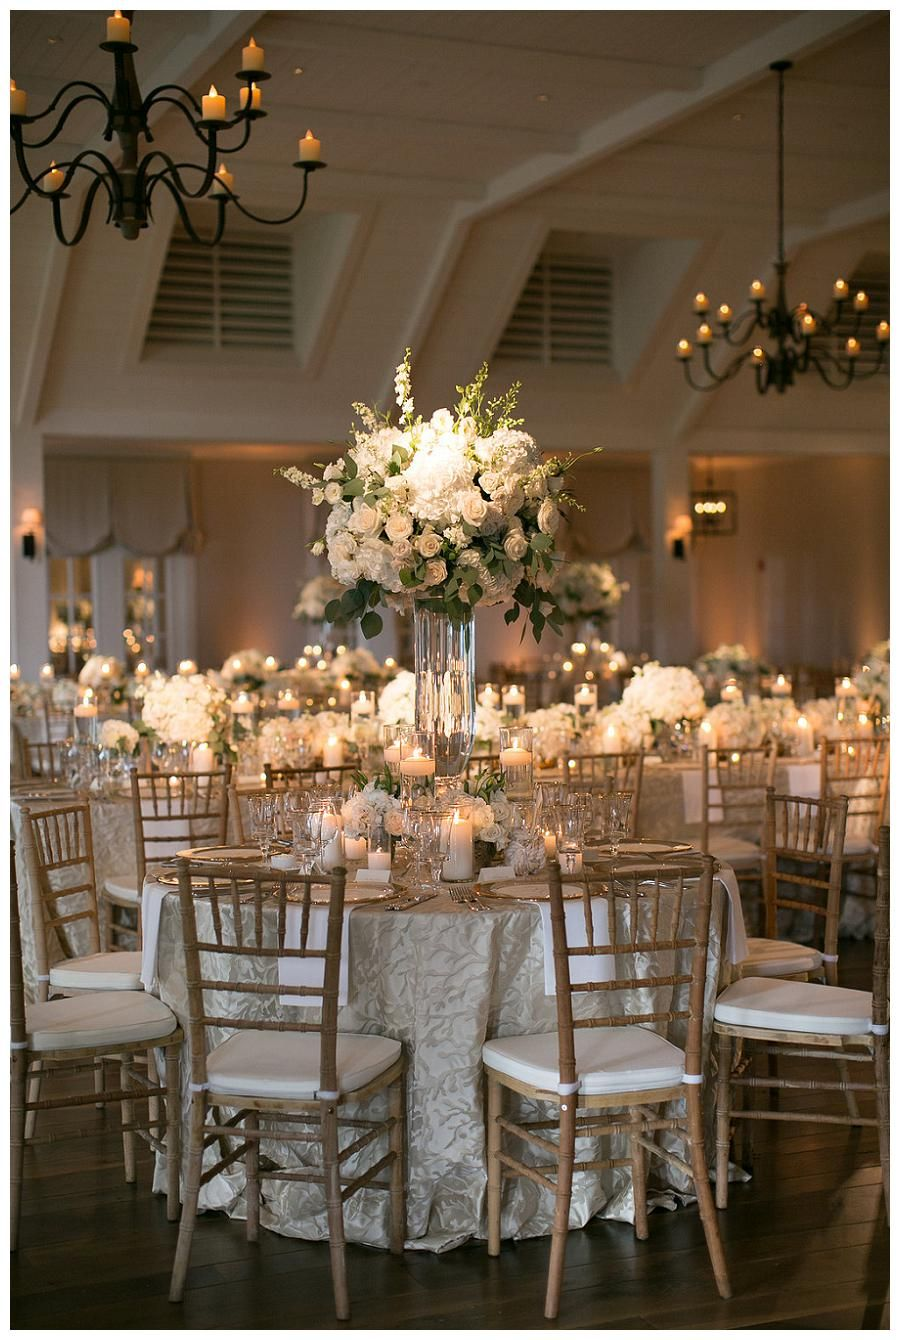 36 white wedding decoration ideas wedding decorations wedding gold ivory and white wedding reception decor with white florals in glass vessels place settings of gold rimmed crystal and gold rimmed glass chargers junglespirit